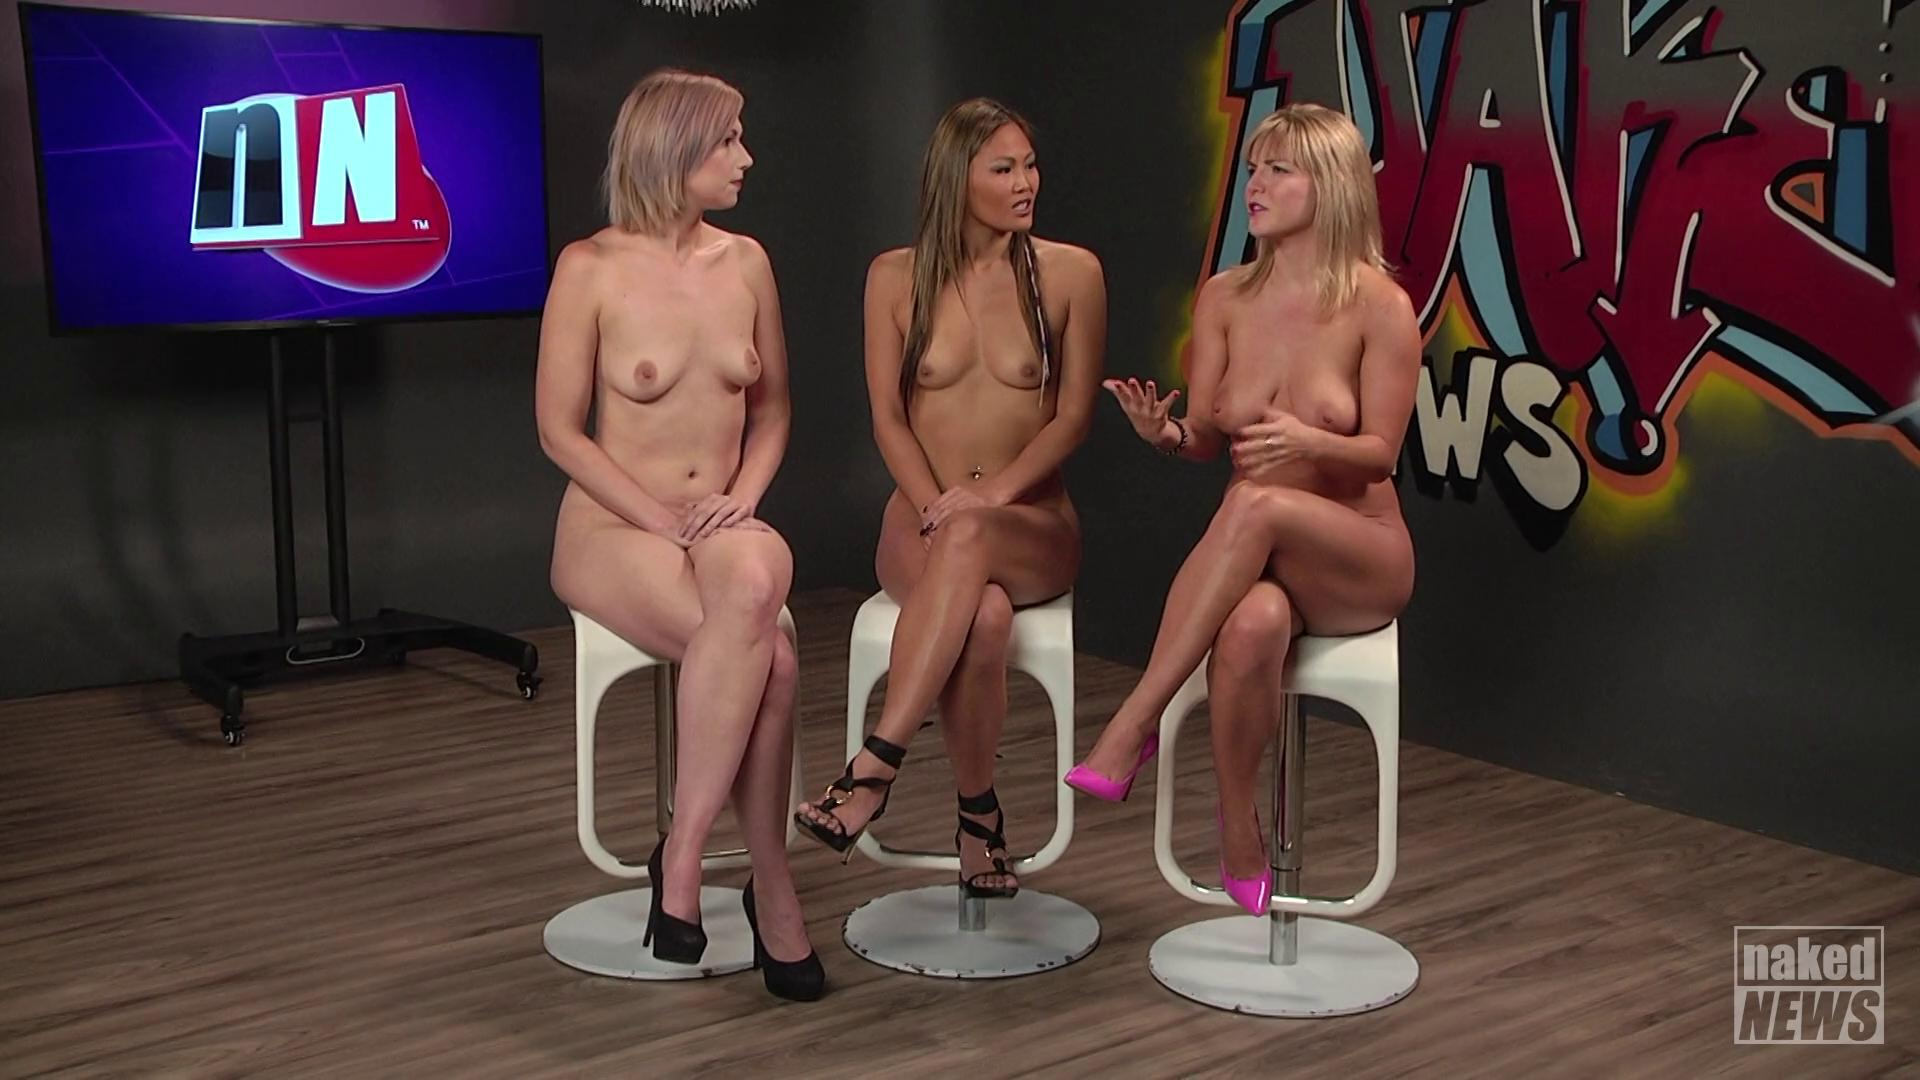 Tv presenter downblouse nude nipples on live tv streaming porn